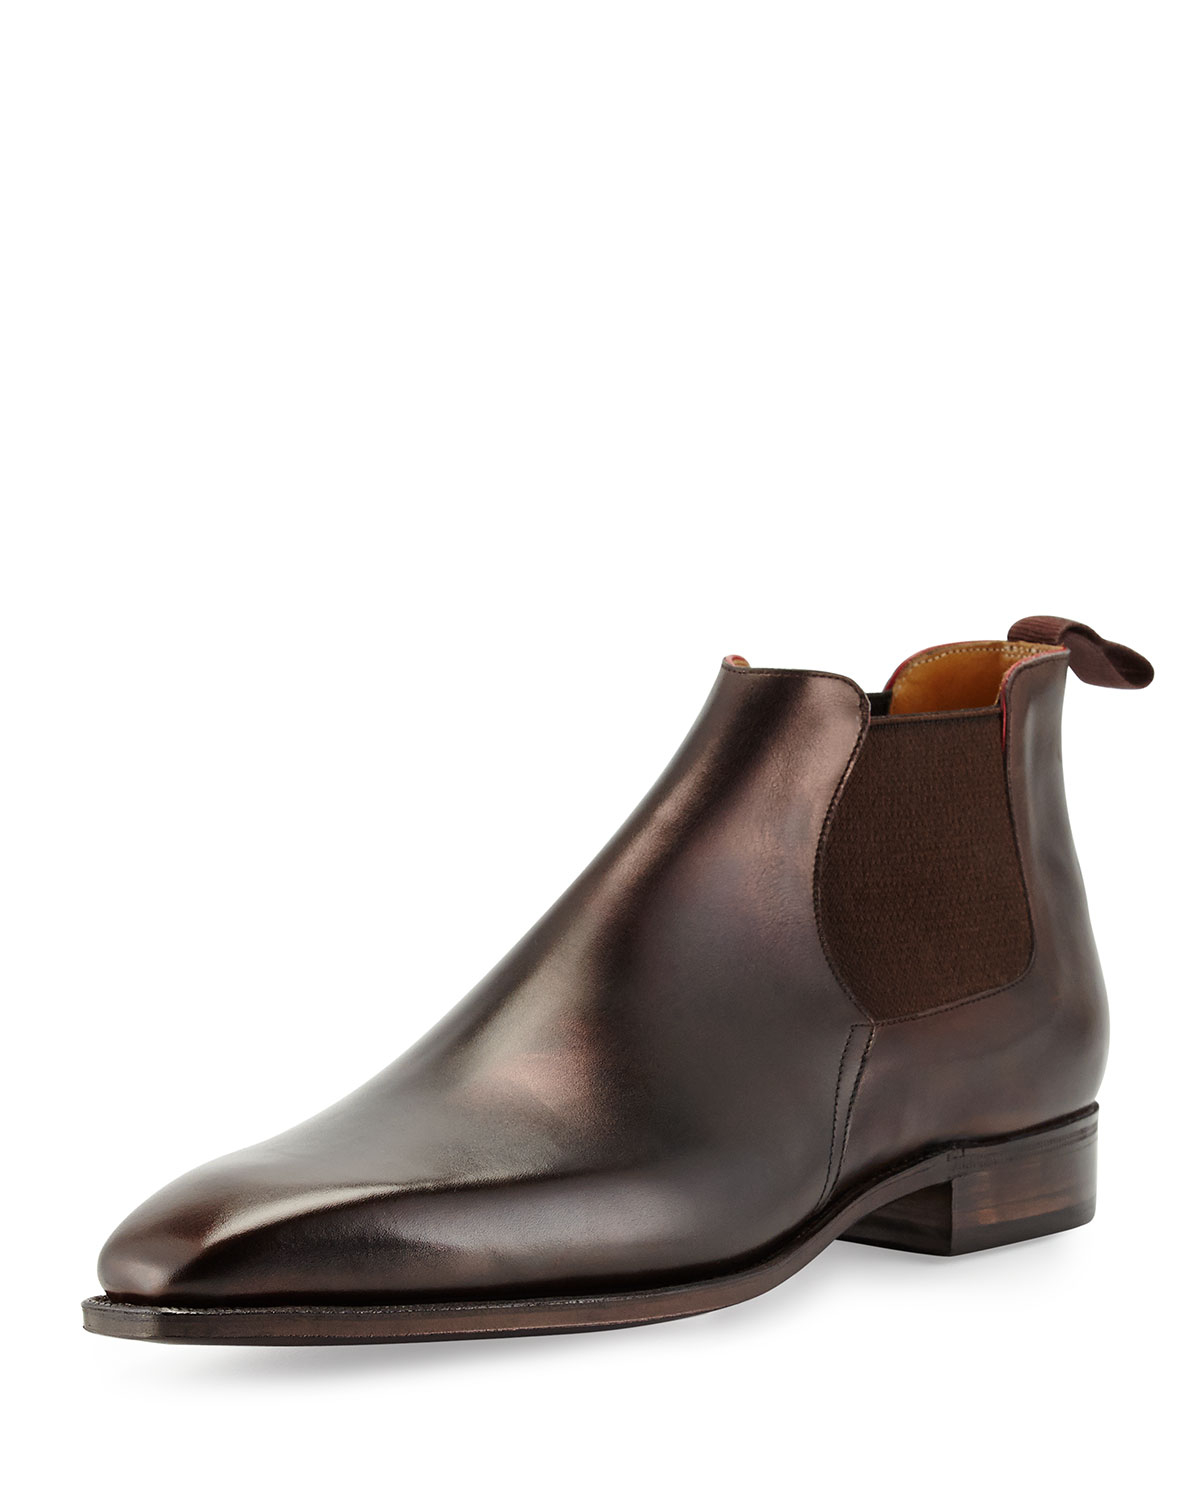 corthay dress leather chelsea boot in brown for